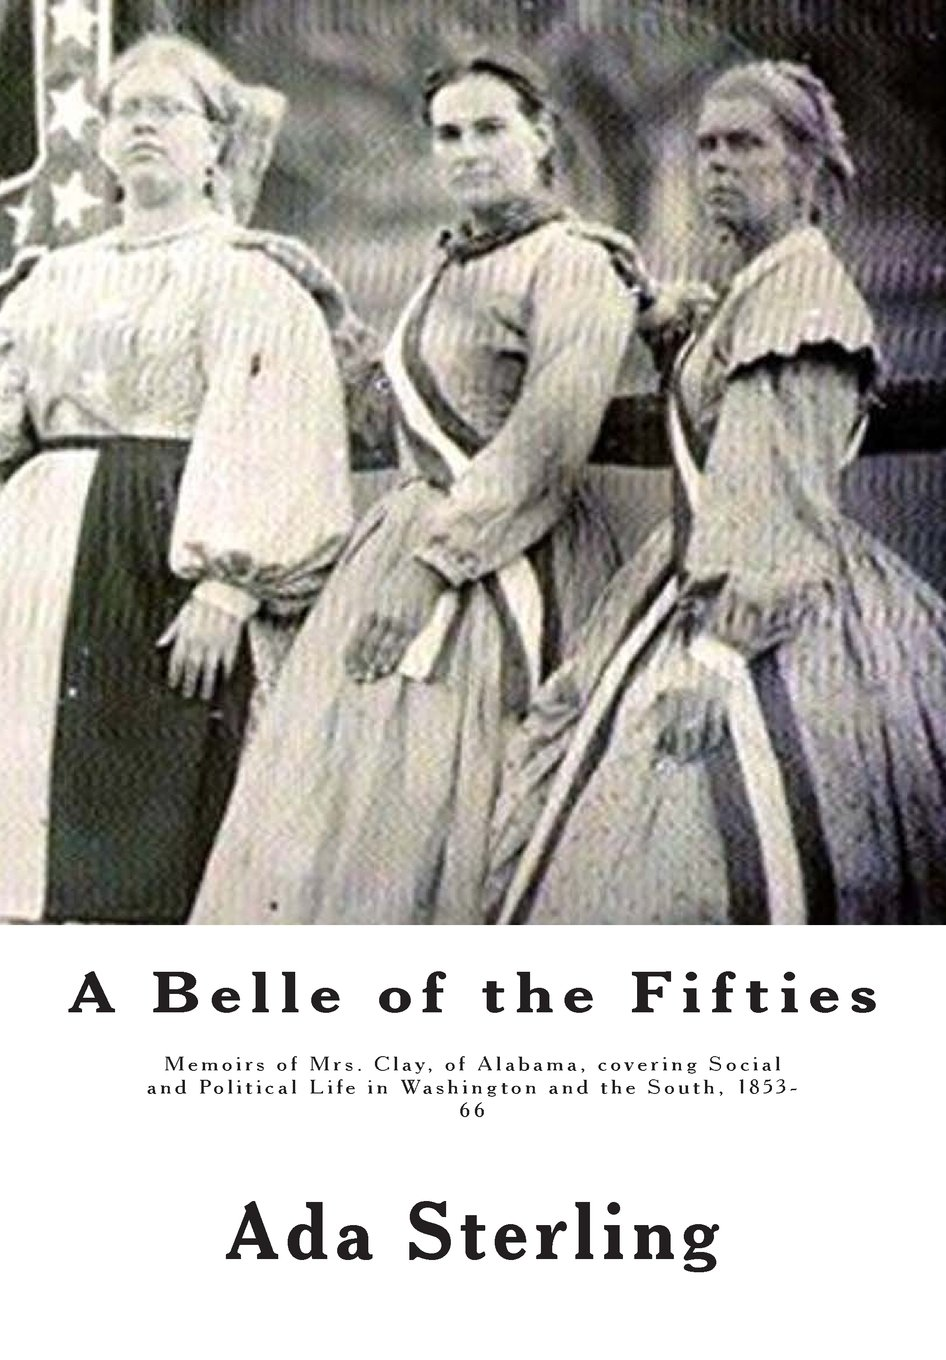 Download A Belle of the Fifties: Memoirs of Mrs. Clay, of Alabama, covering Social and Political Life in Washington and the South, 1853- 66 pdf